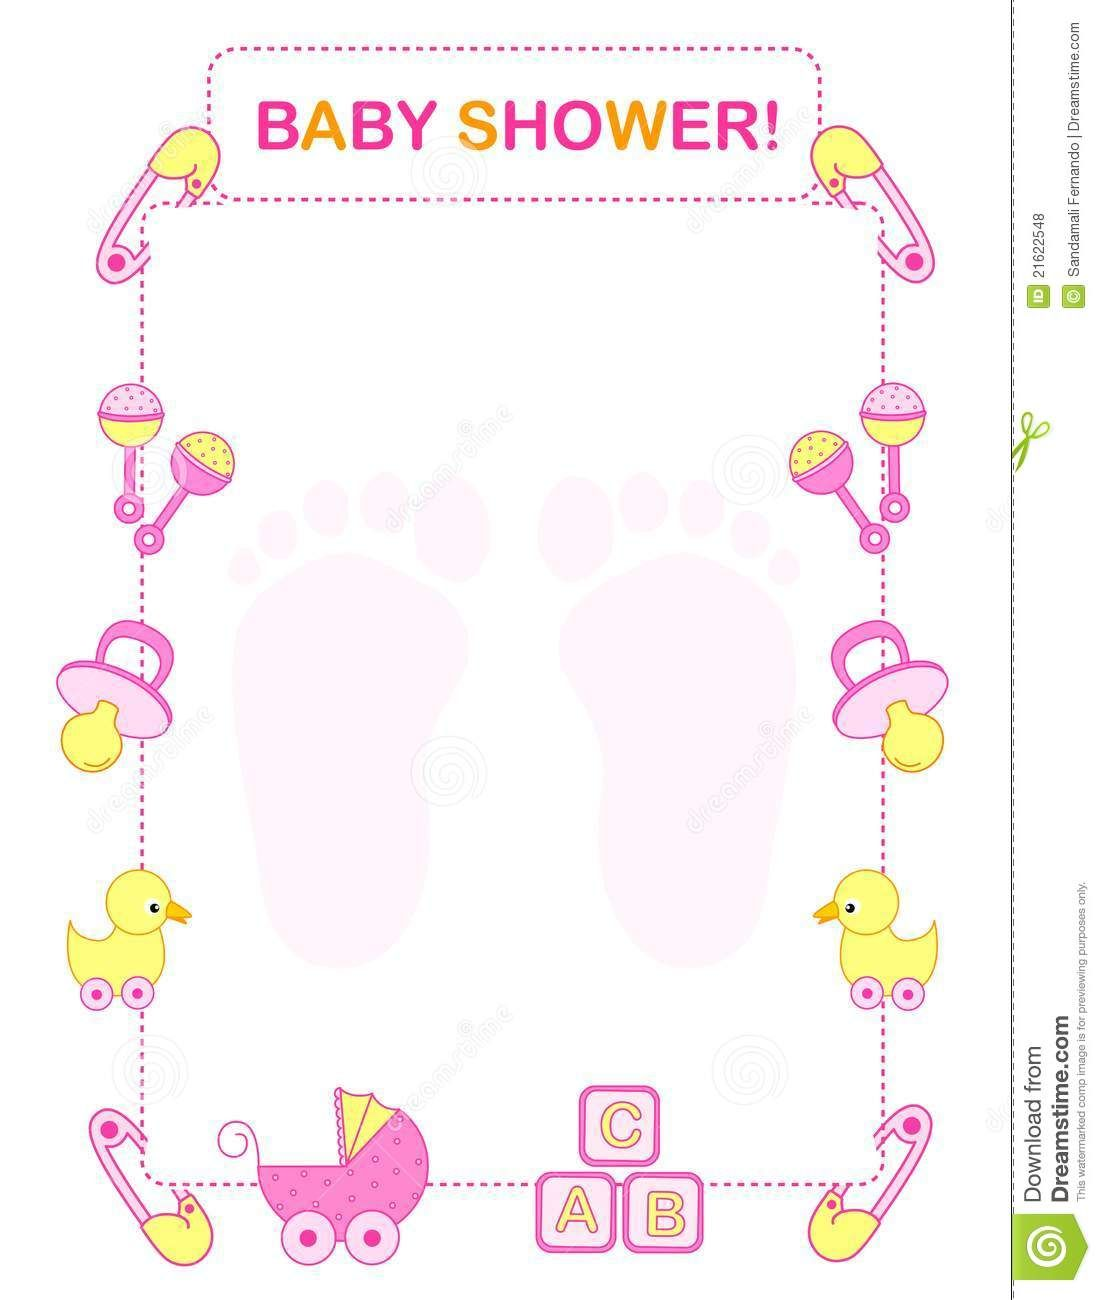 Free Printable Baby Shower Clip Art (59 ) in 2019.